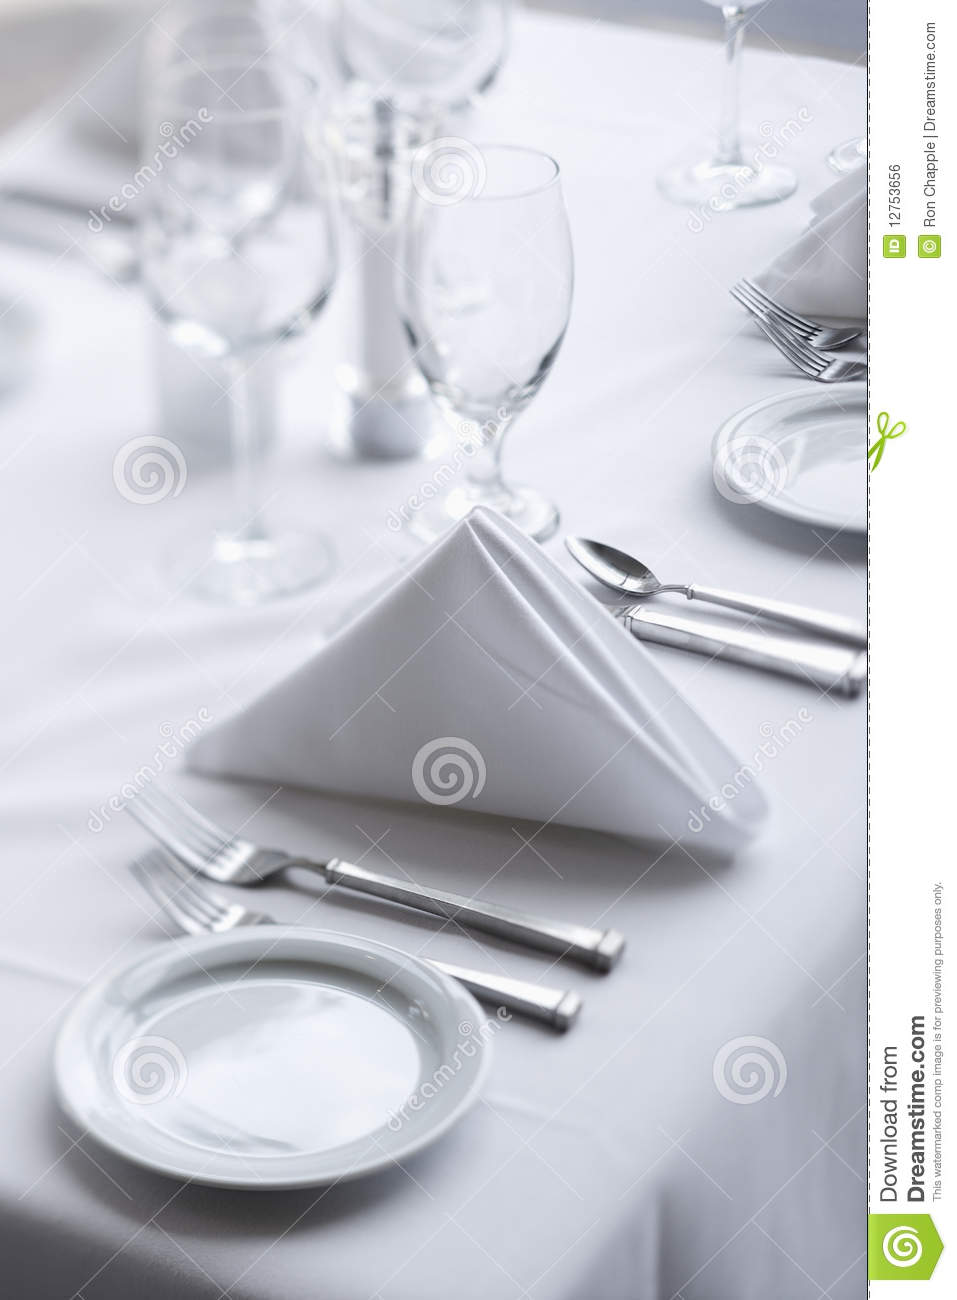 Dining table place settings Photo - 1